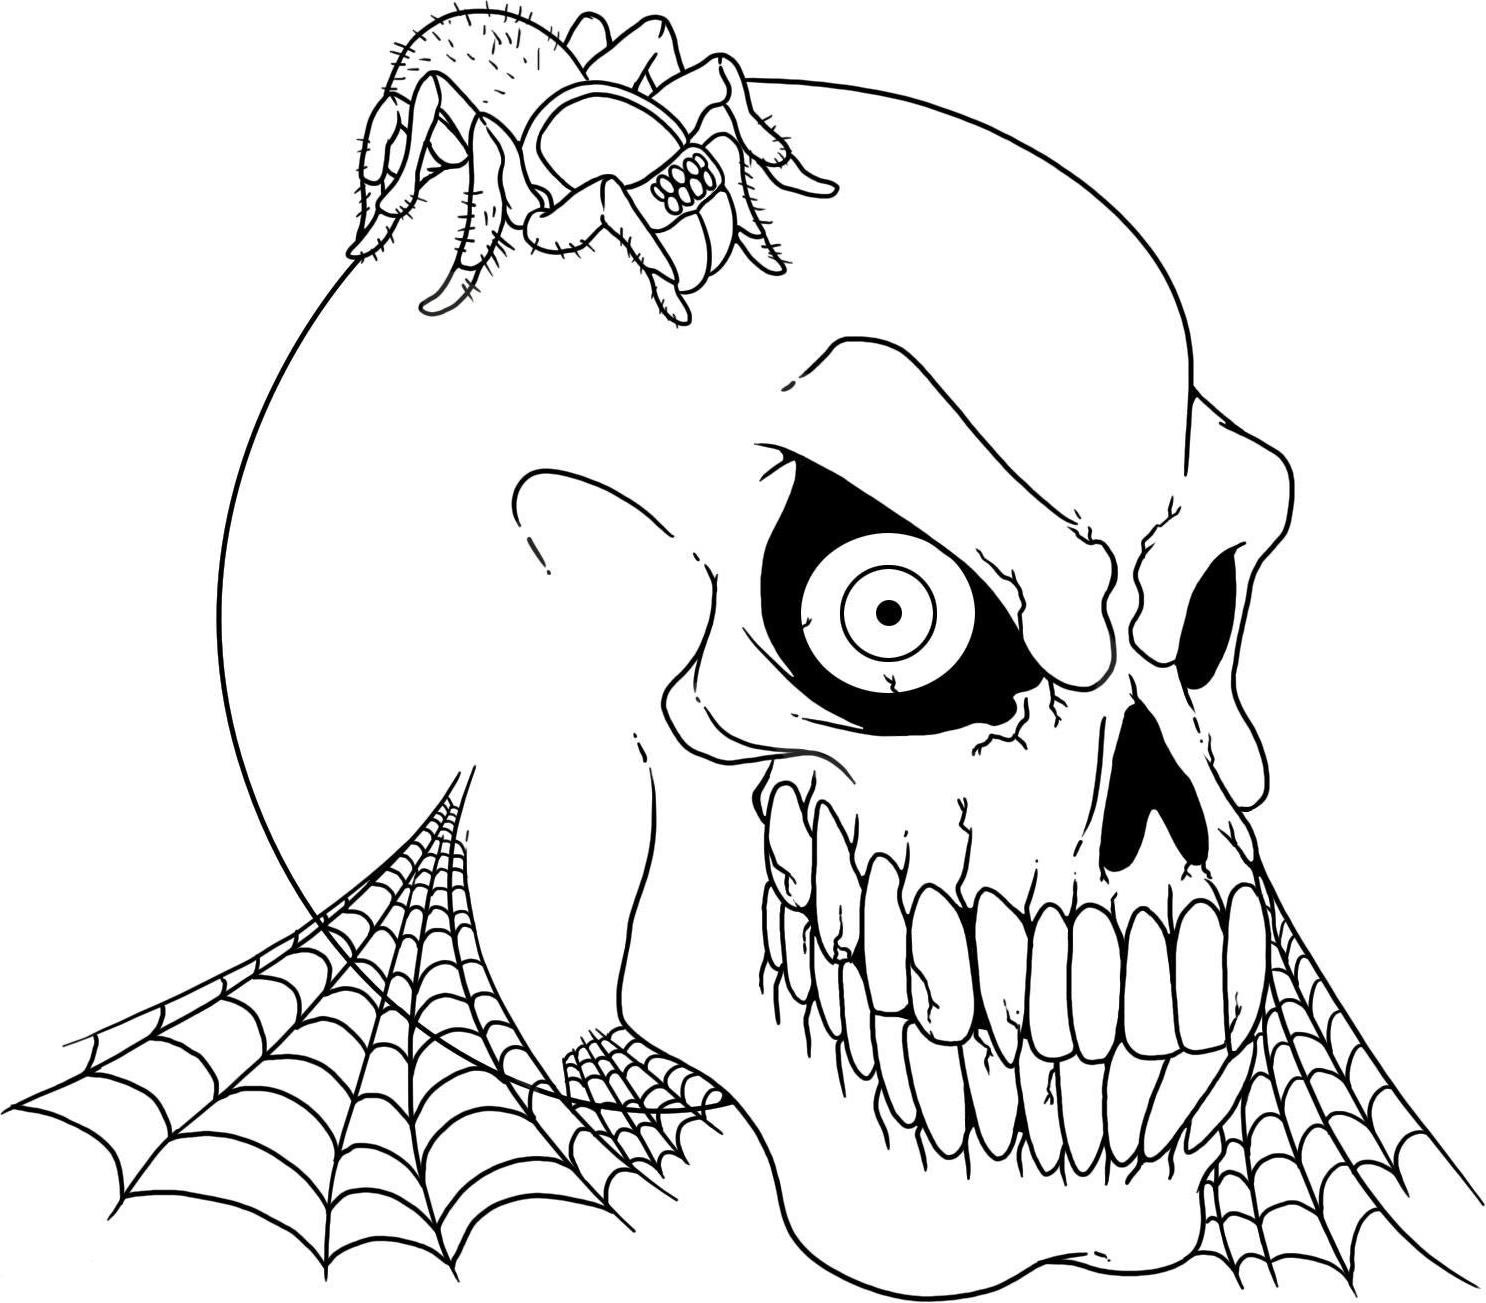 1486x1303 Halloween Scary One Free Coloring Page Halloween Holidays Coloring